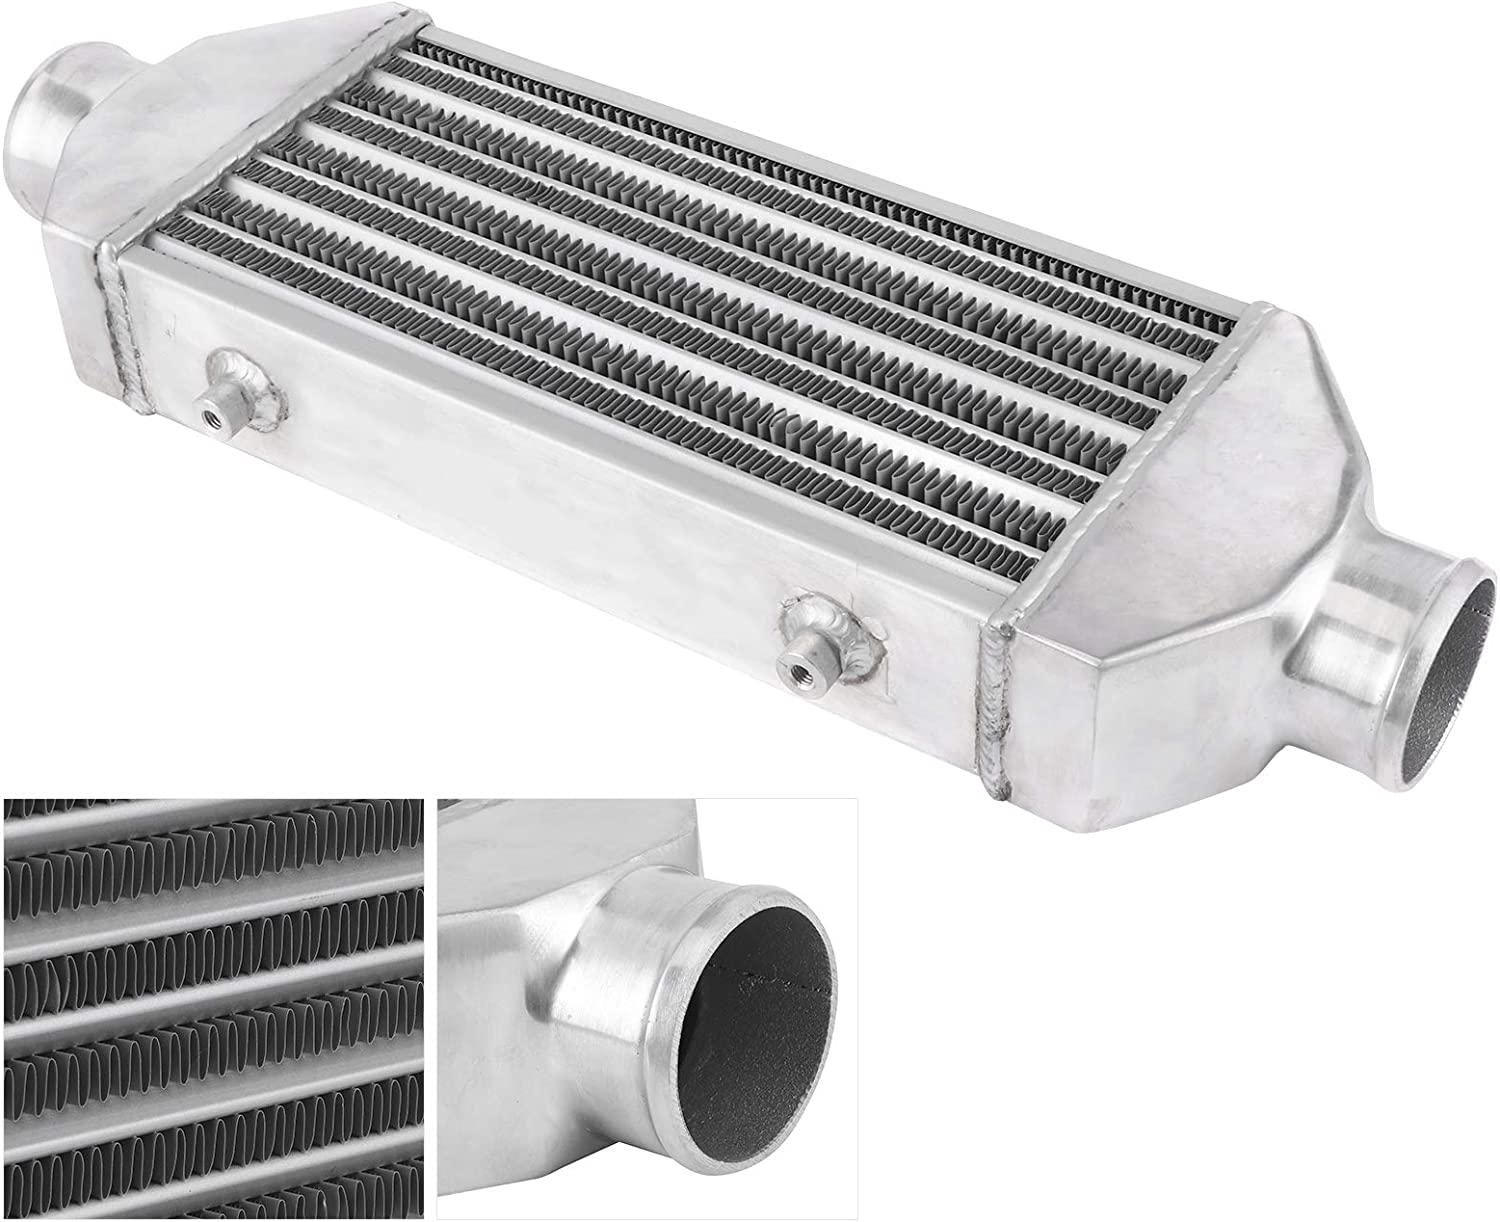 Acouto Performance Turbocharger Intercoolers,Universal Turbo Intercooler Front Mount 63mm Inlet Dia 300x160x65mm Car Modified Accessory